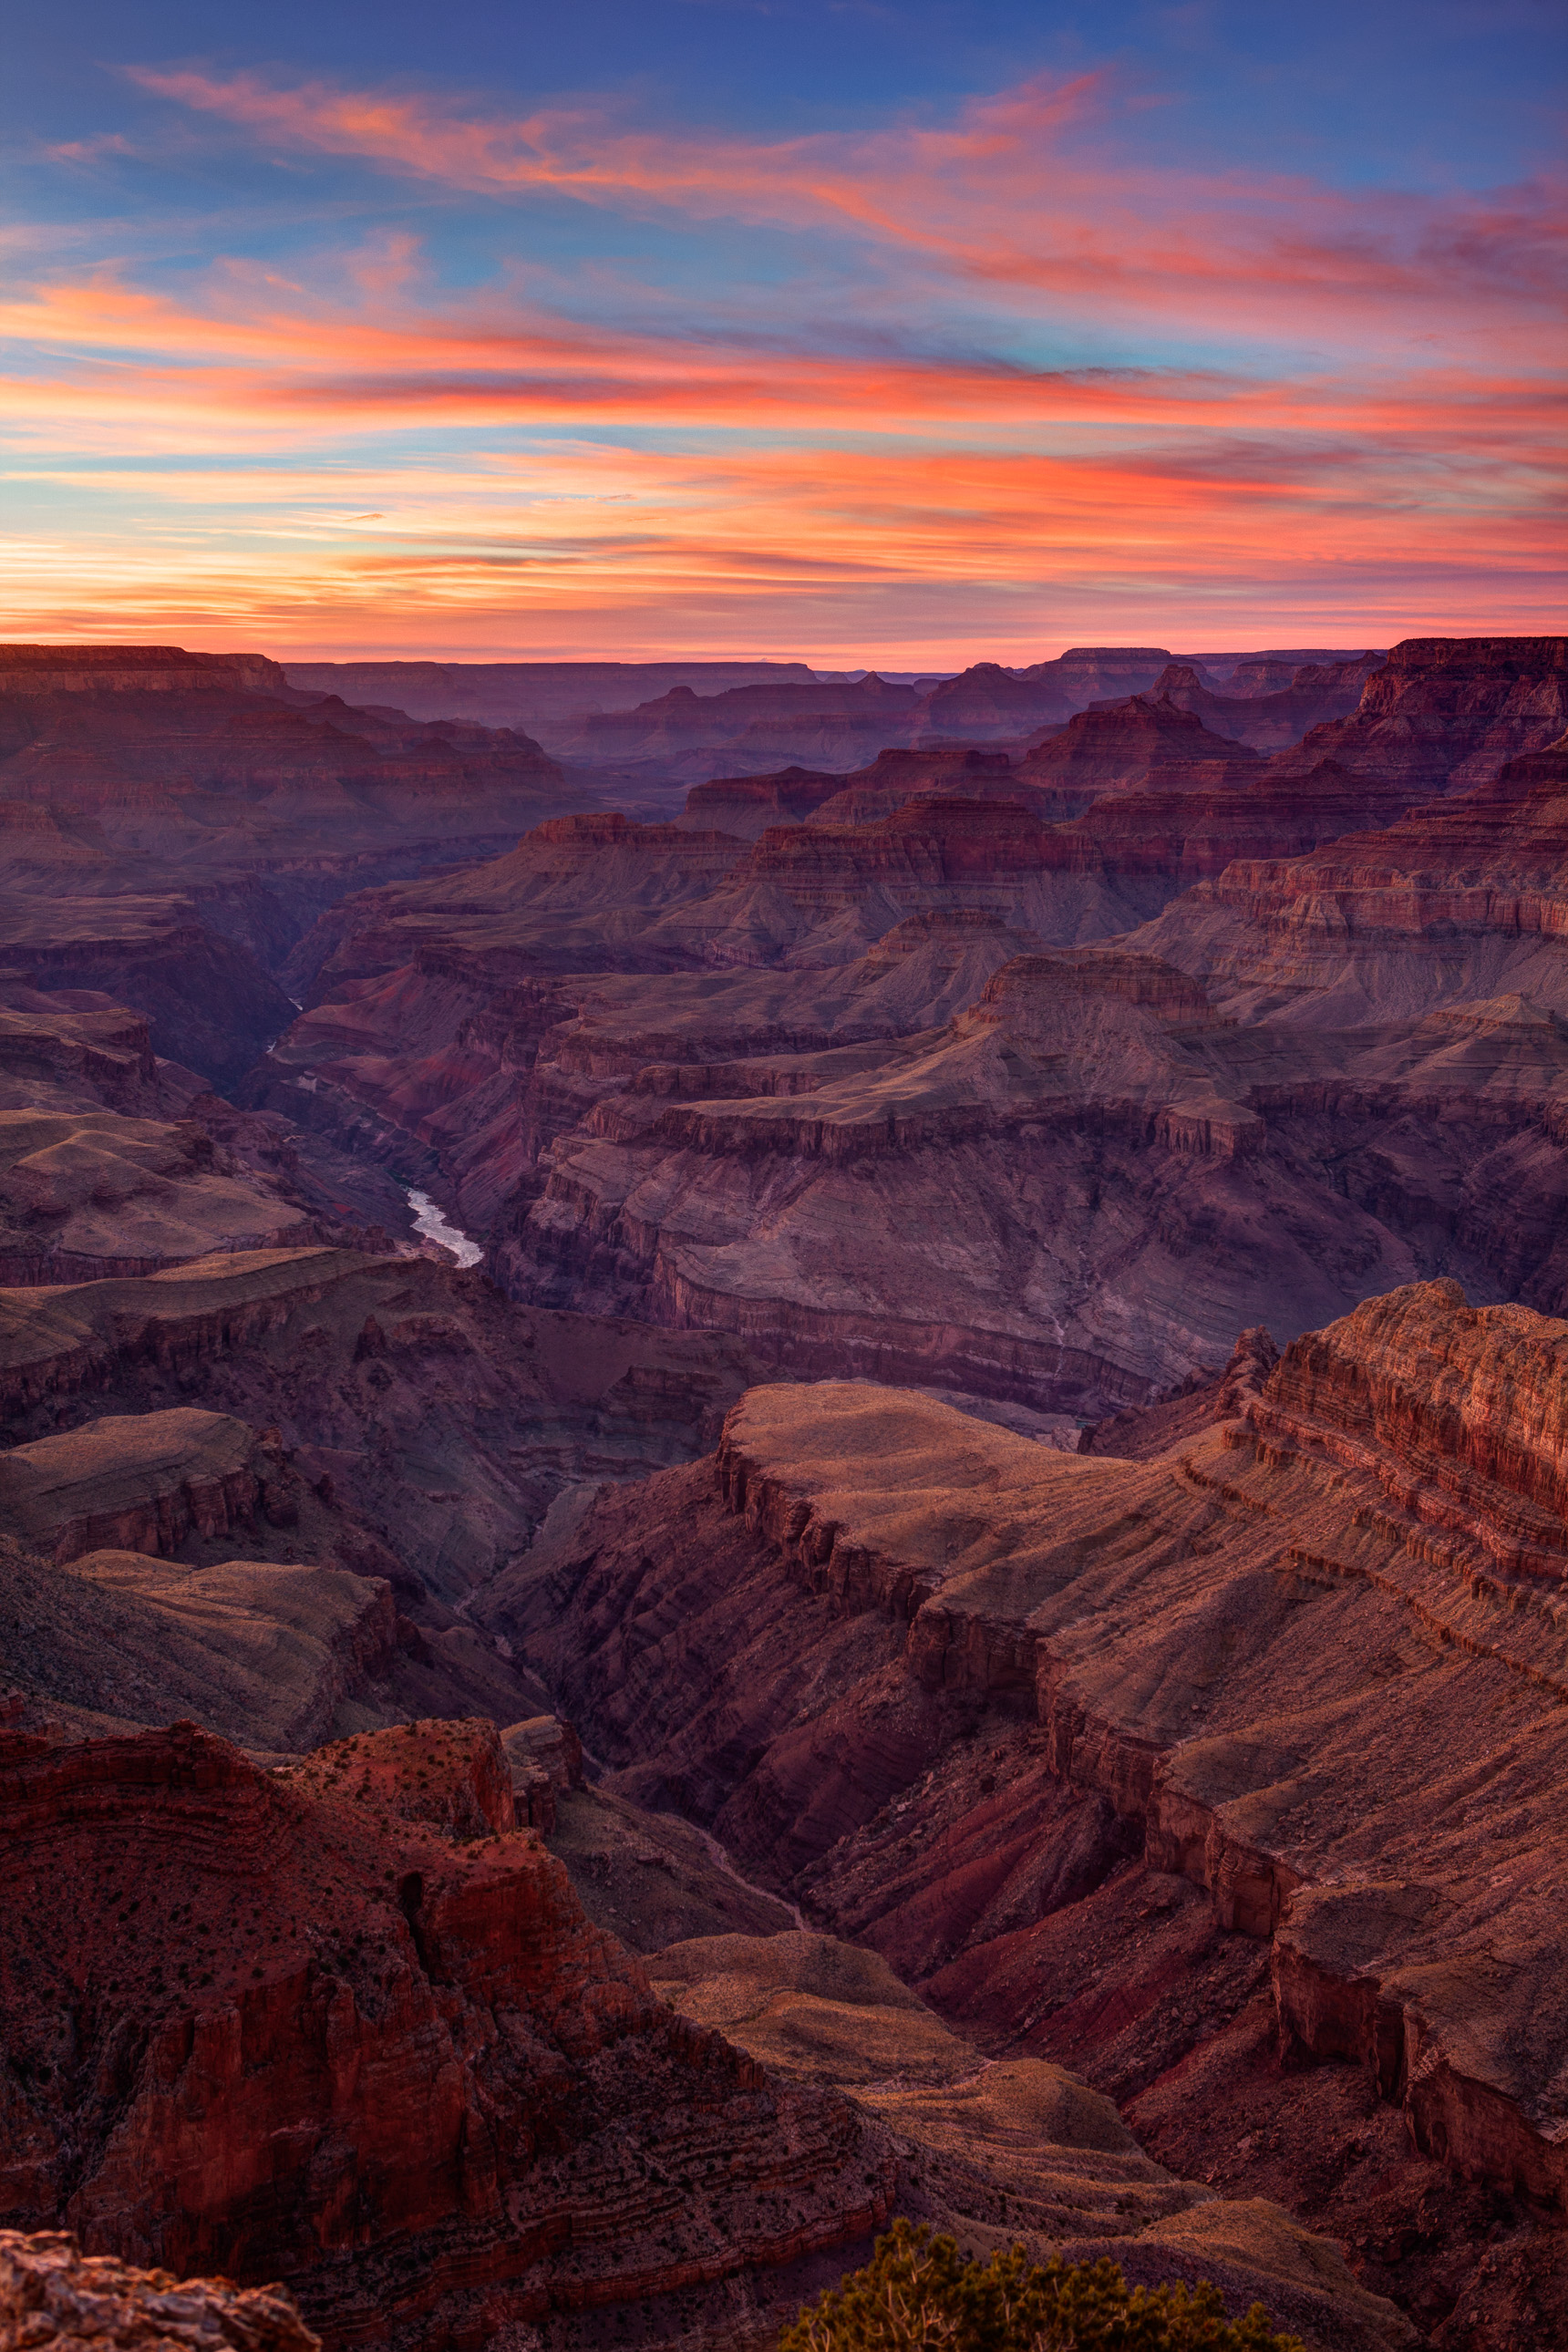 Grand Canyon sunset from Lipan Point